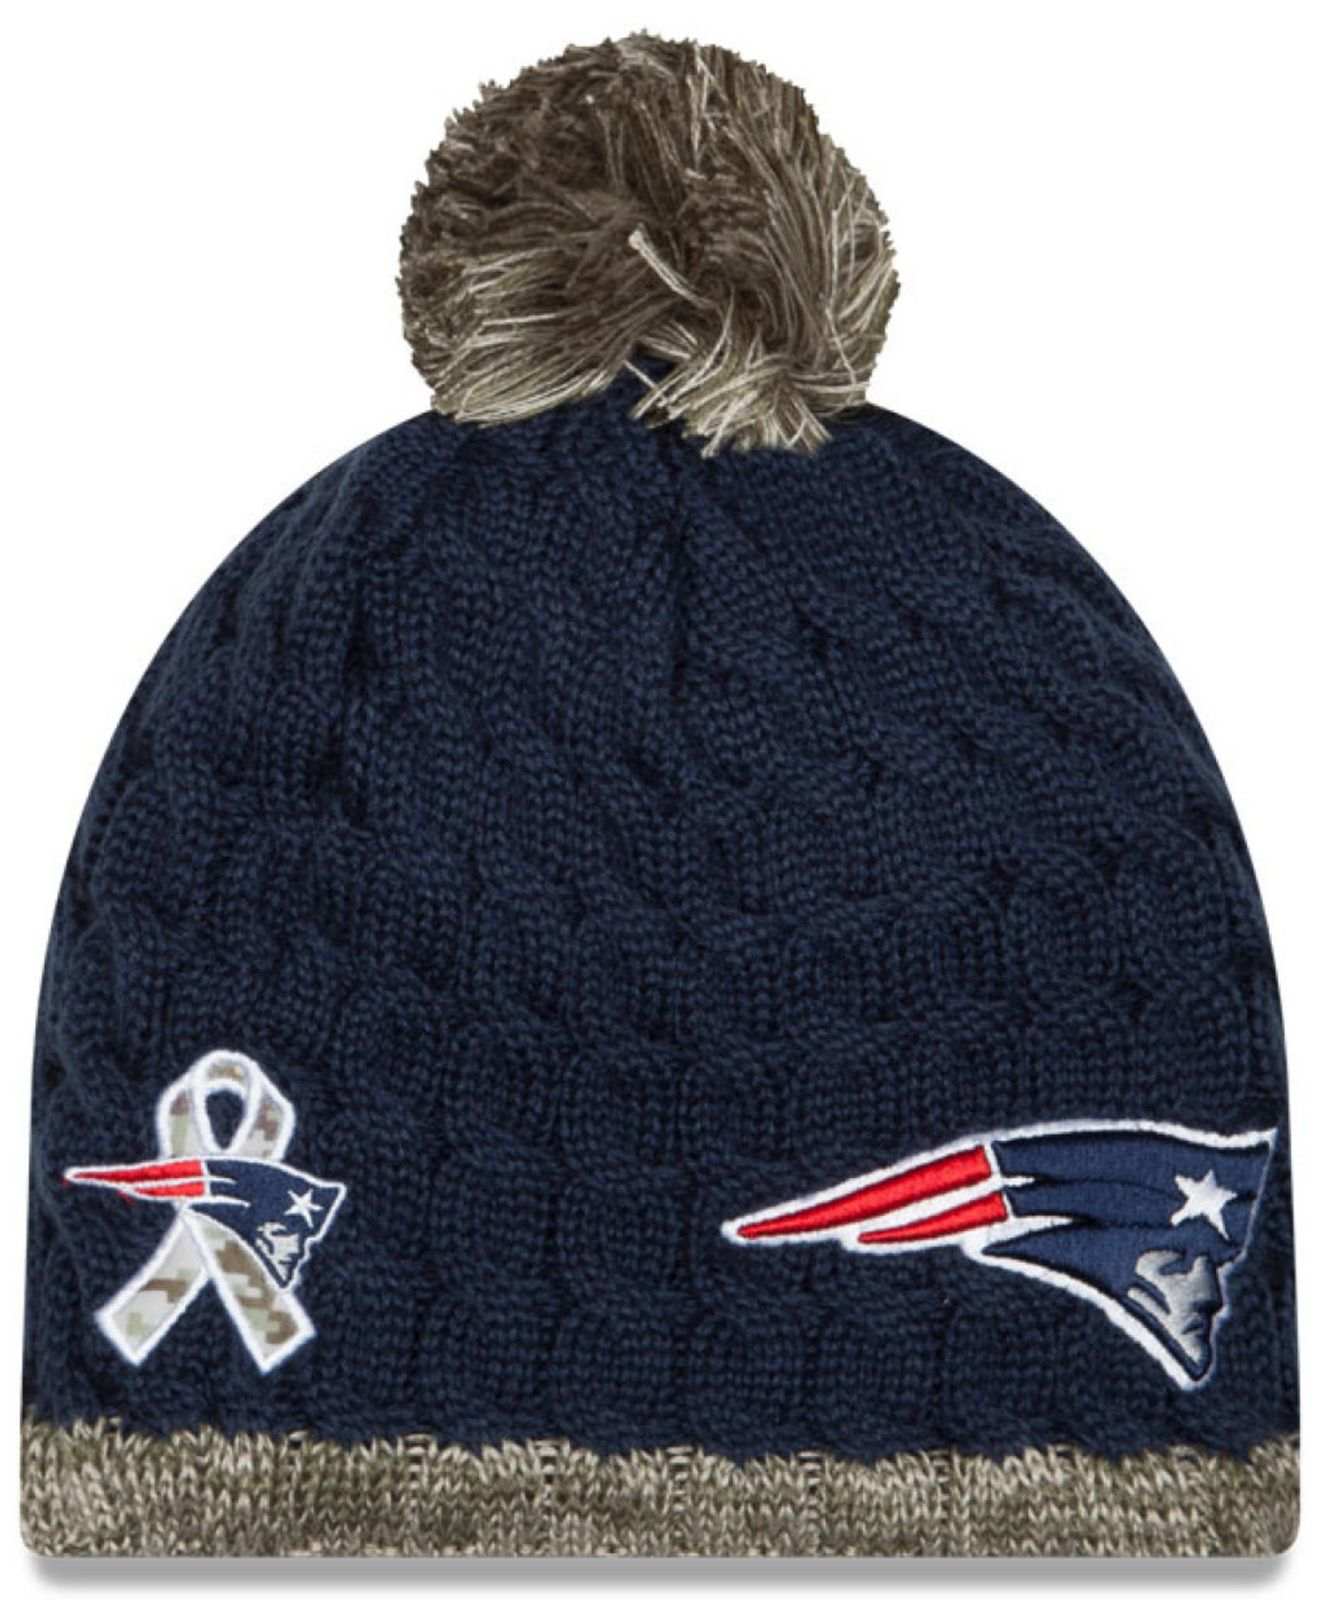 Lyst - KTZ Women s New England Patriots Salute To Service Knit Hat ... a5473977bb